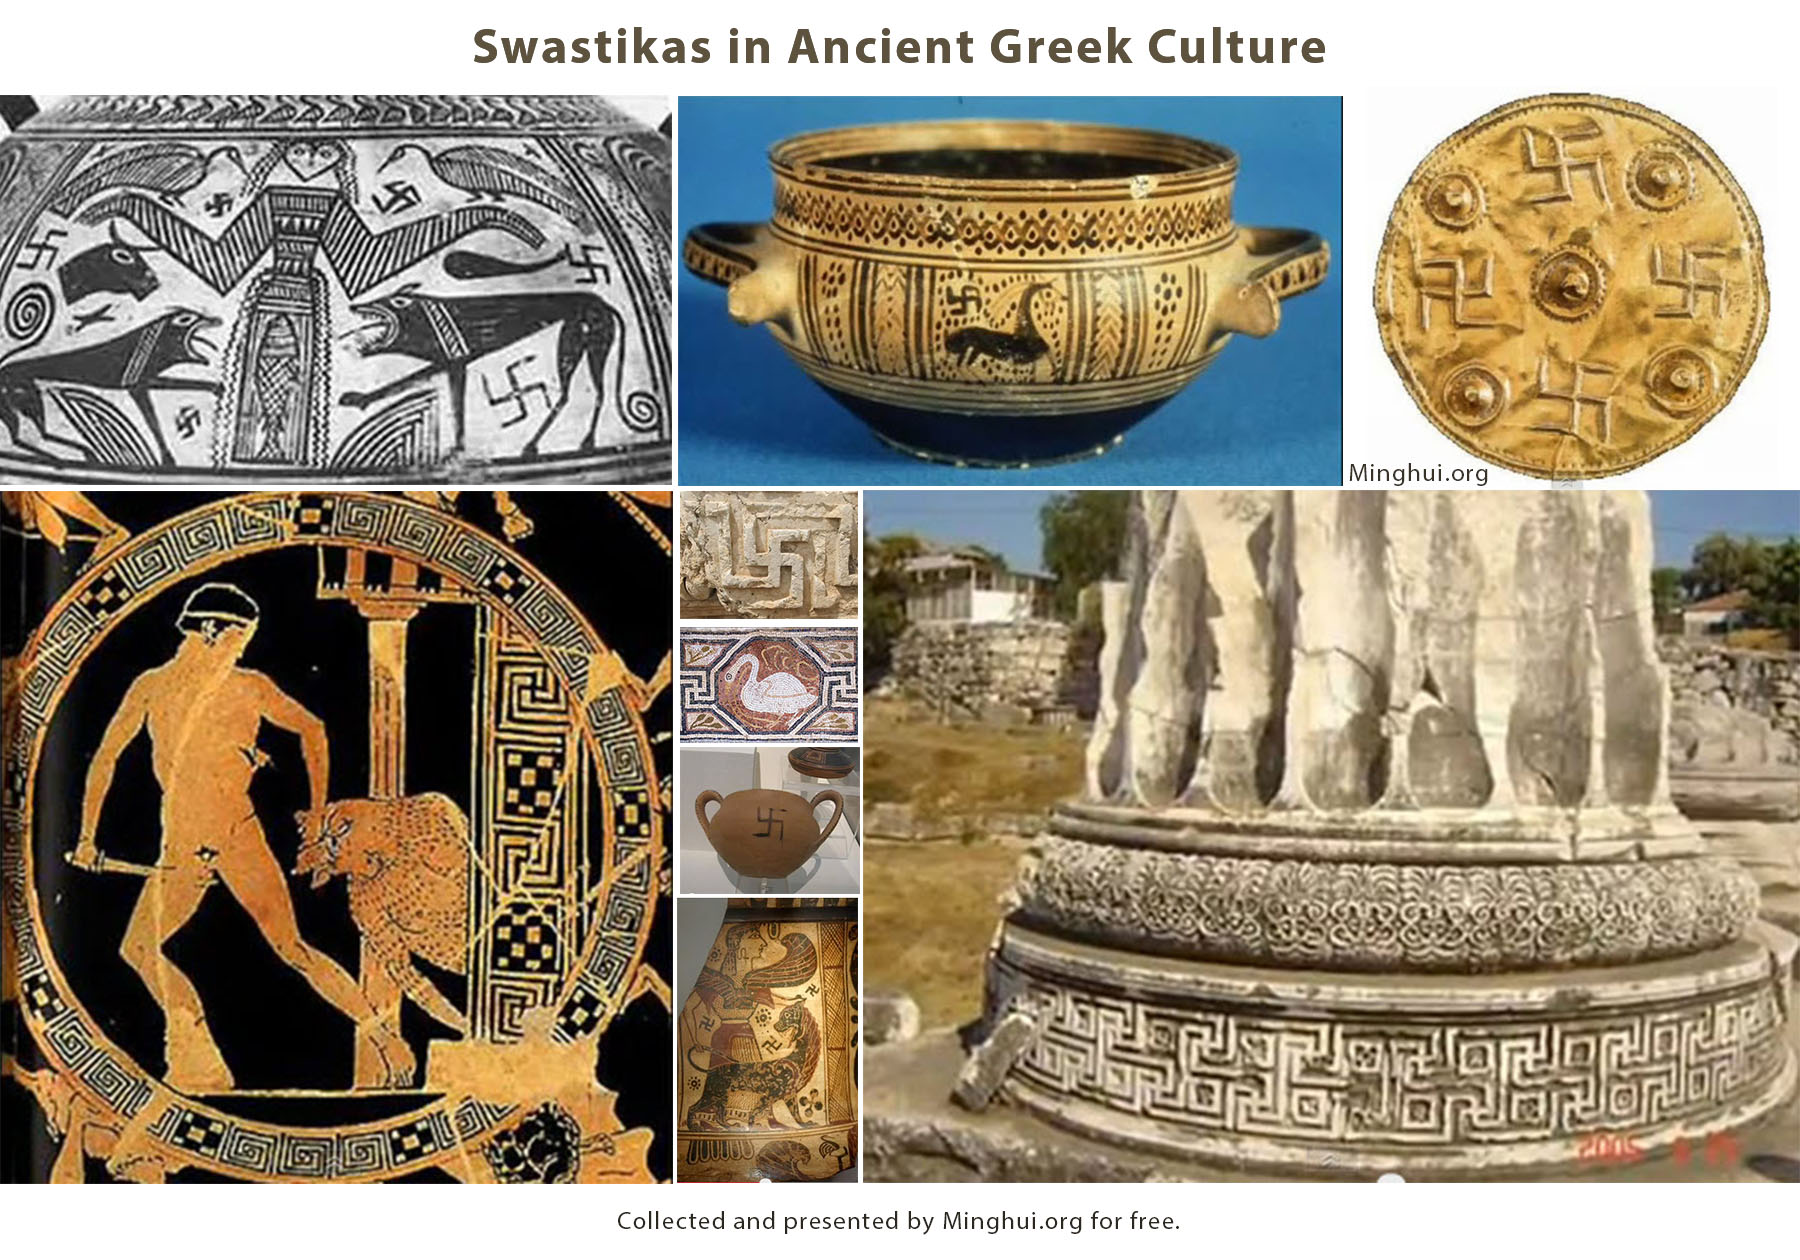 Swastikas in ancient greek culture falun dafa minghui the image above shows examples of the use of swastikas in ancient greek architecture pottery frescoes and more m4hsunfo